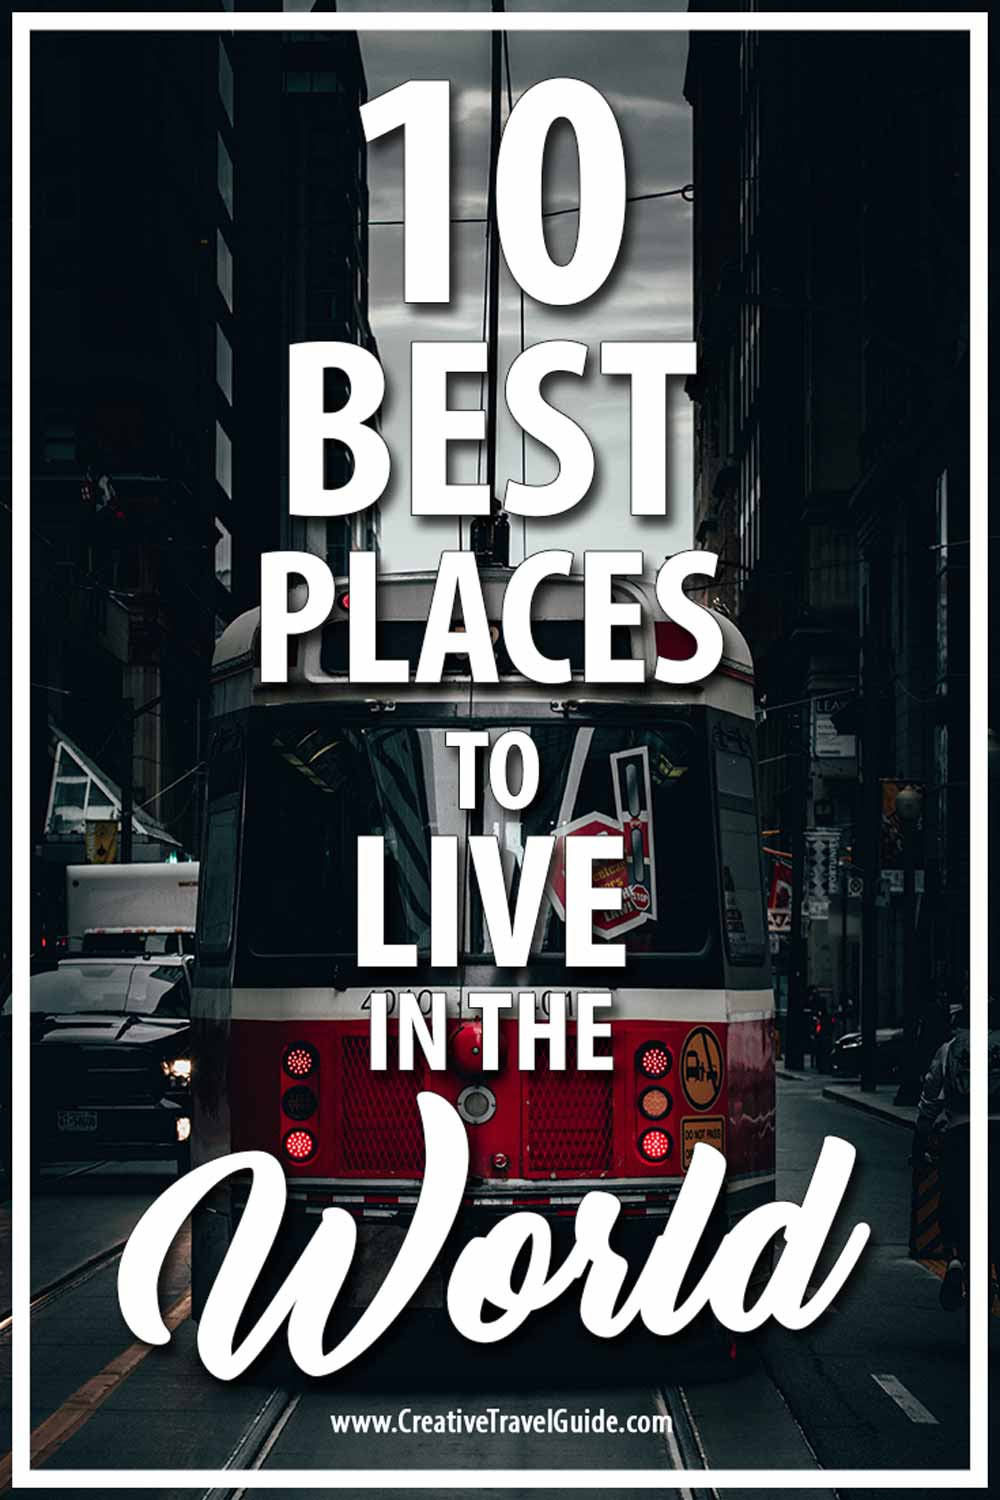 The best place to live in the world